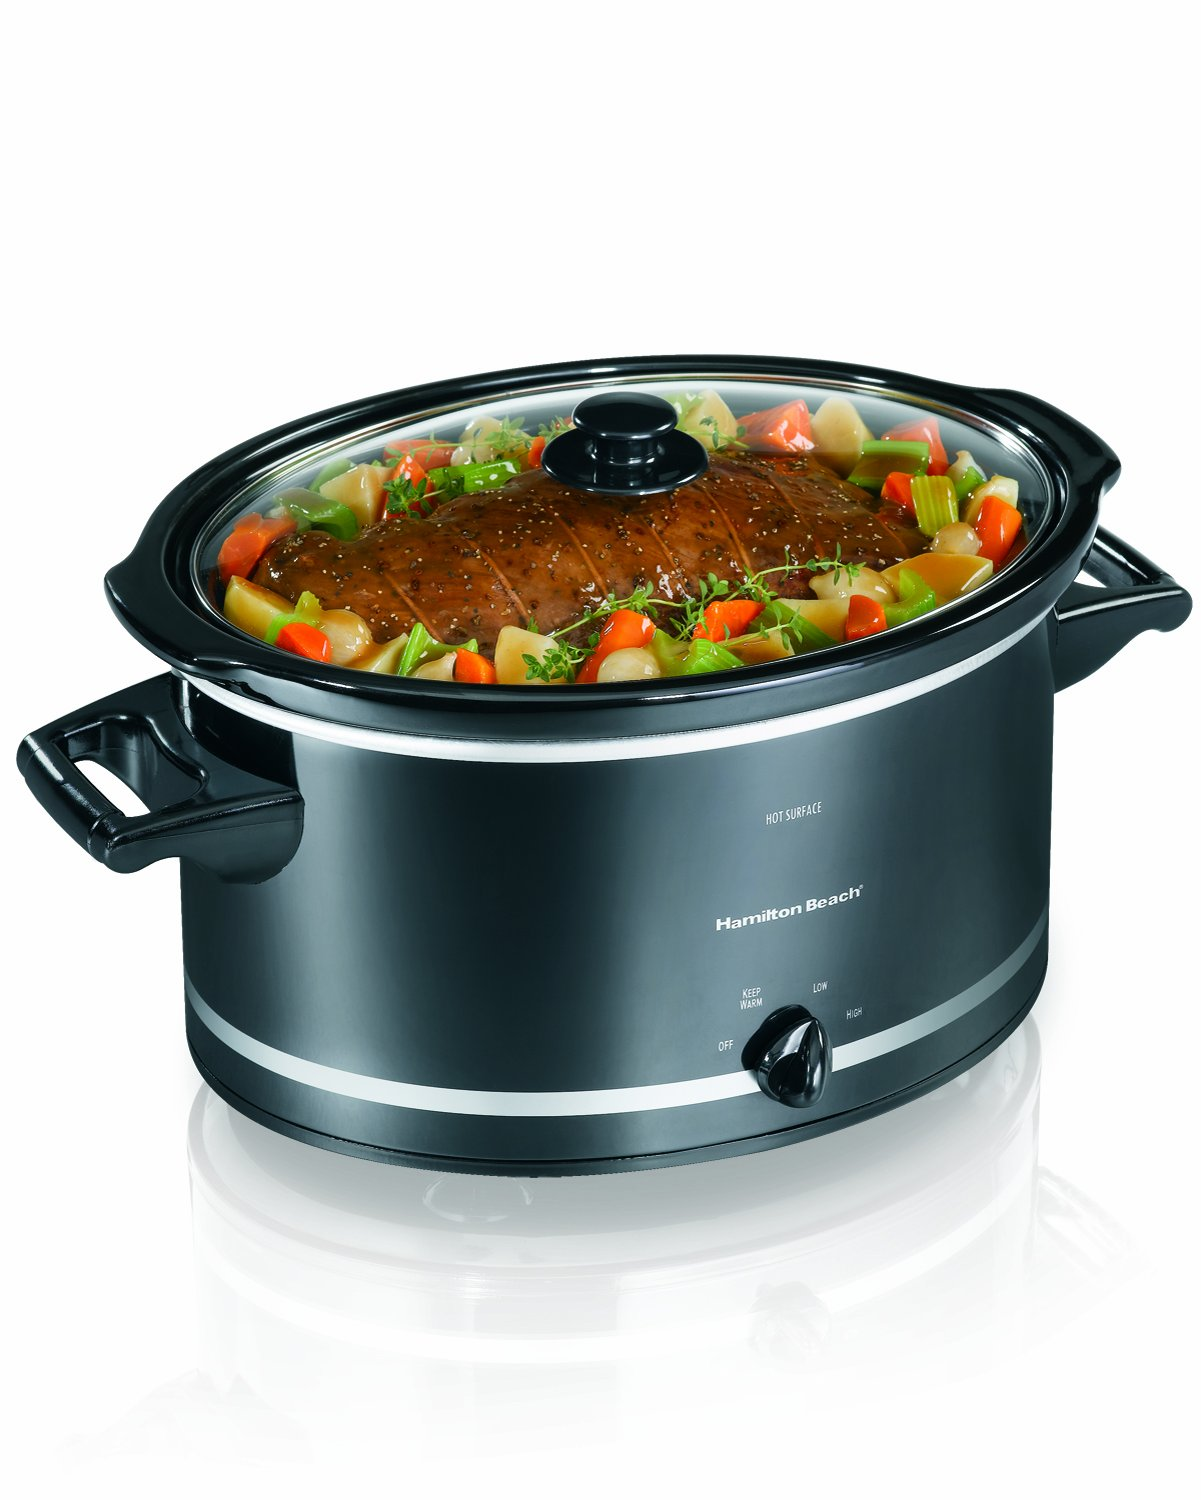 Hamilton Beach 33182 8-Quart Oval Slow Cooker, Black (Discontinued)